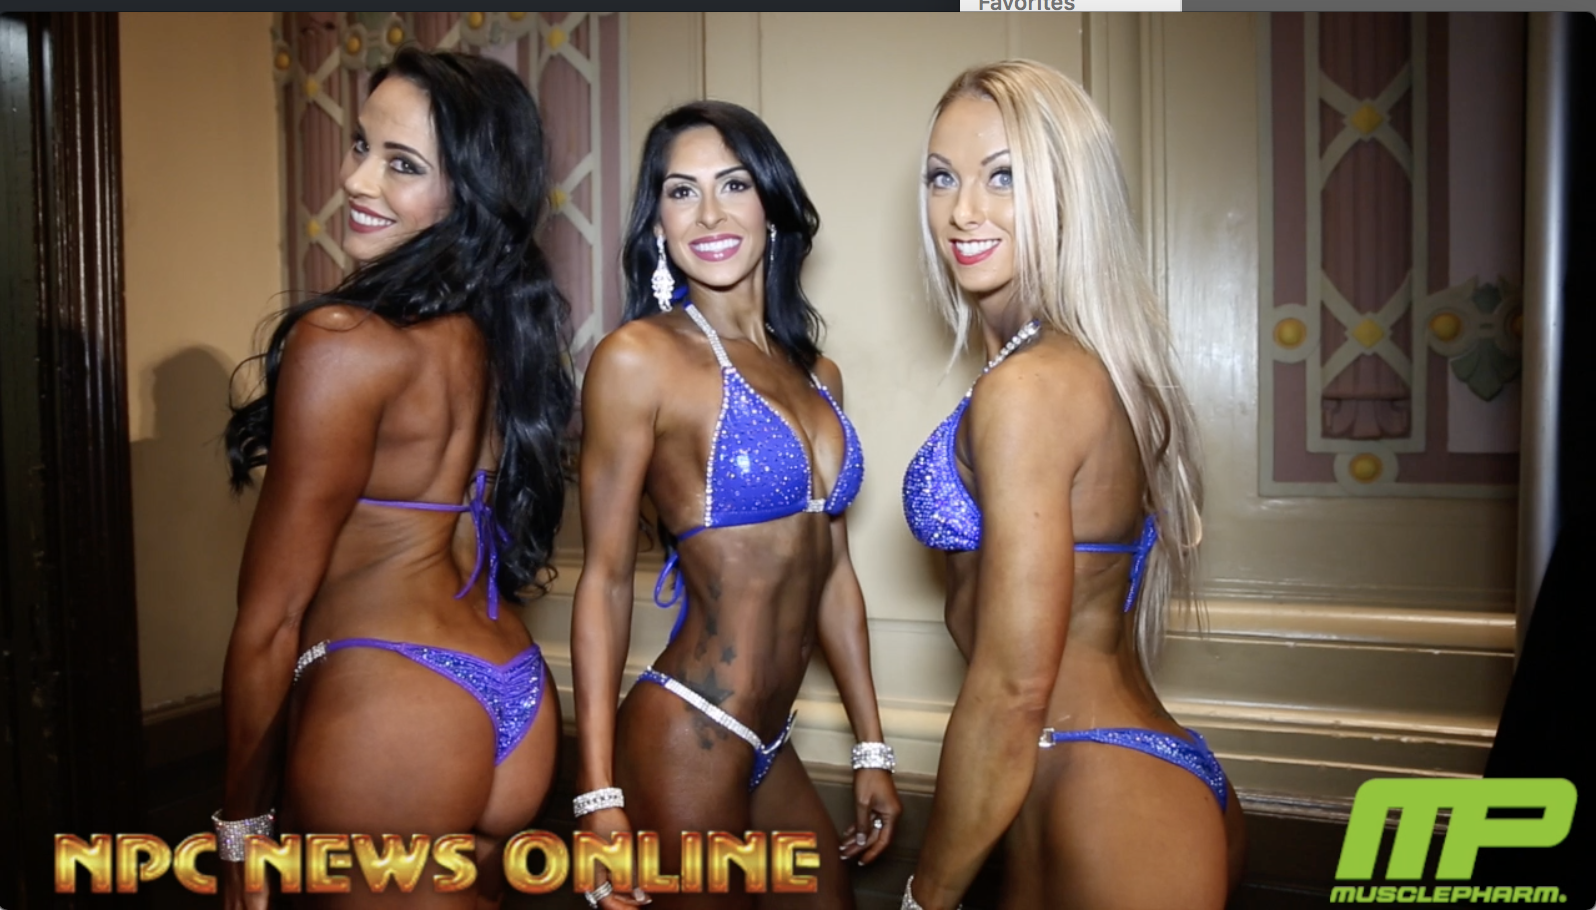 2018 NPC Pittsburgh Championships Bikini Backstage Video